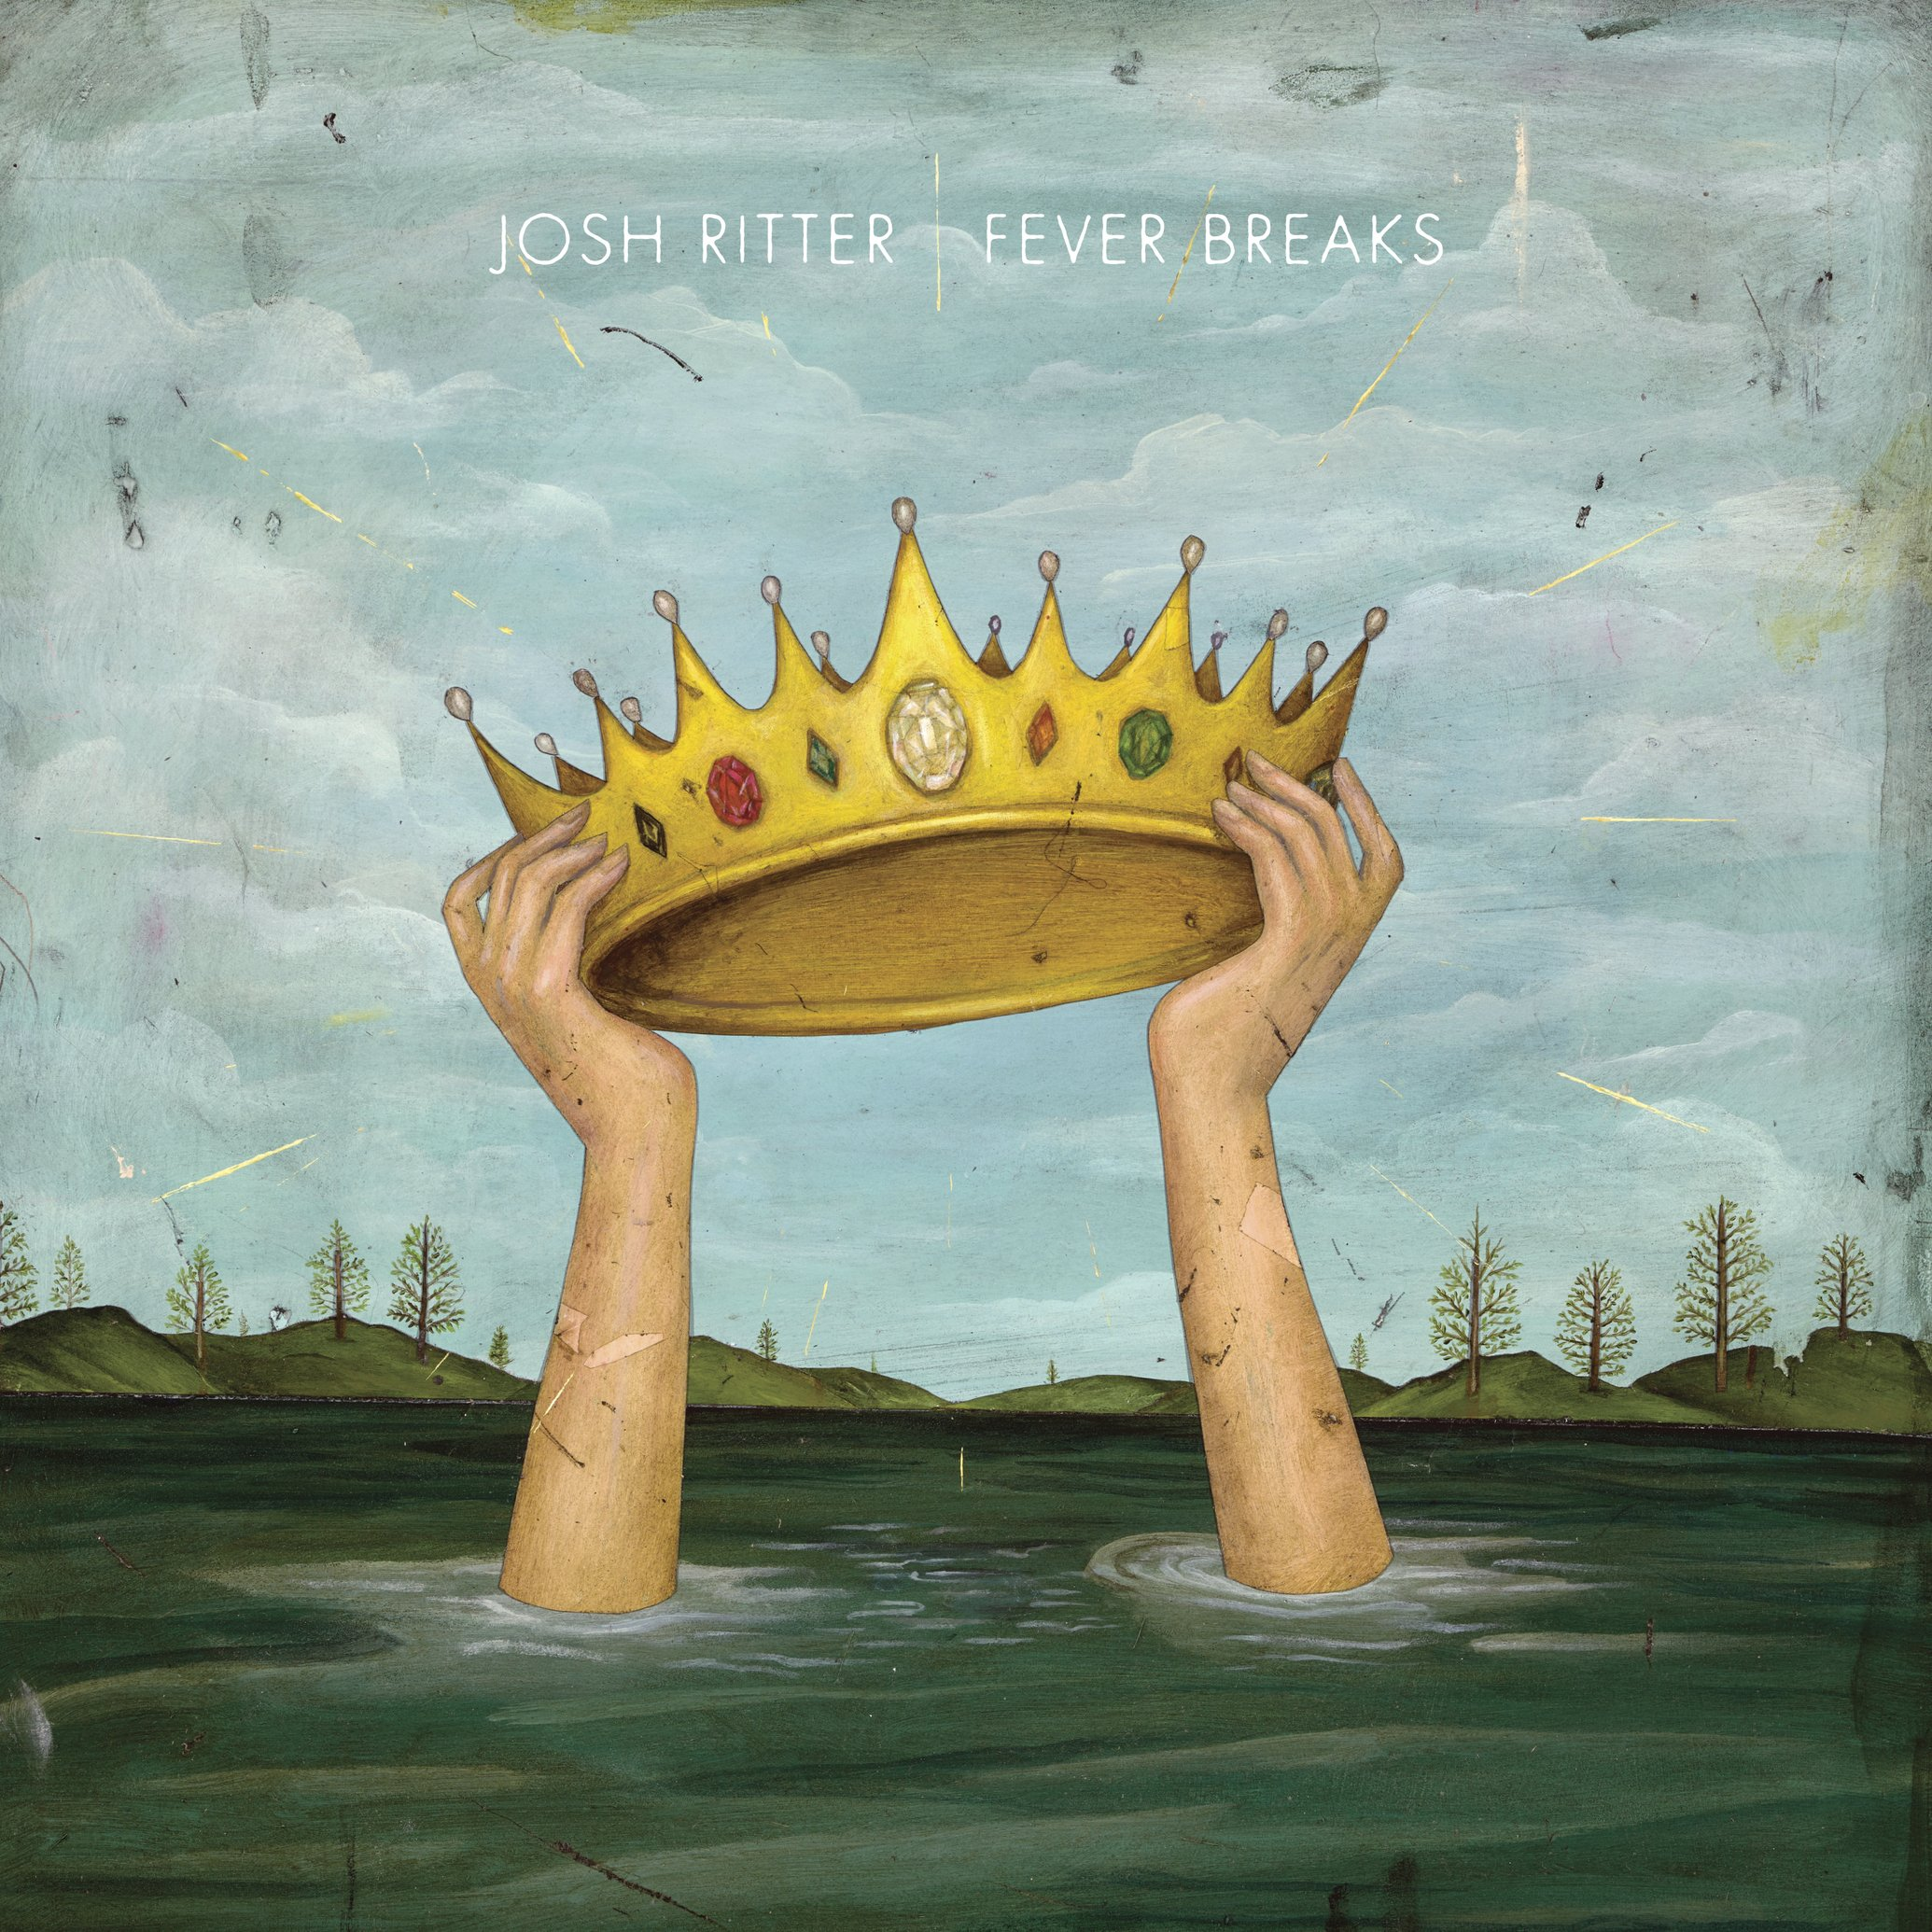 Review: Josh Ritter's 'Fever Breaks' is especially engaging